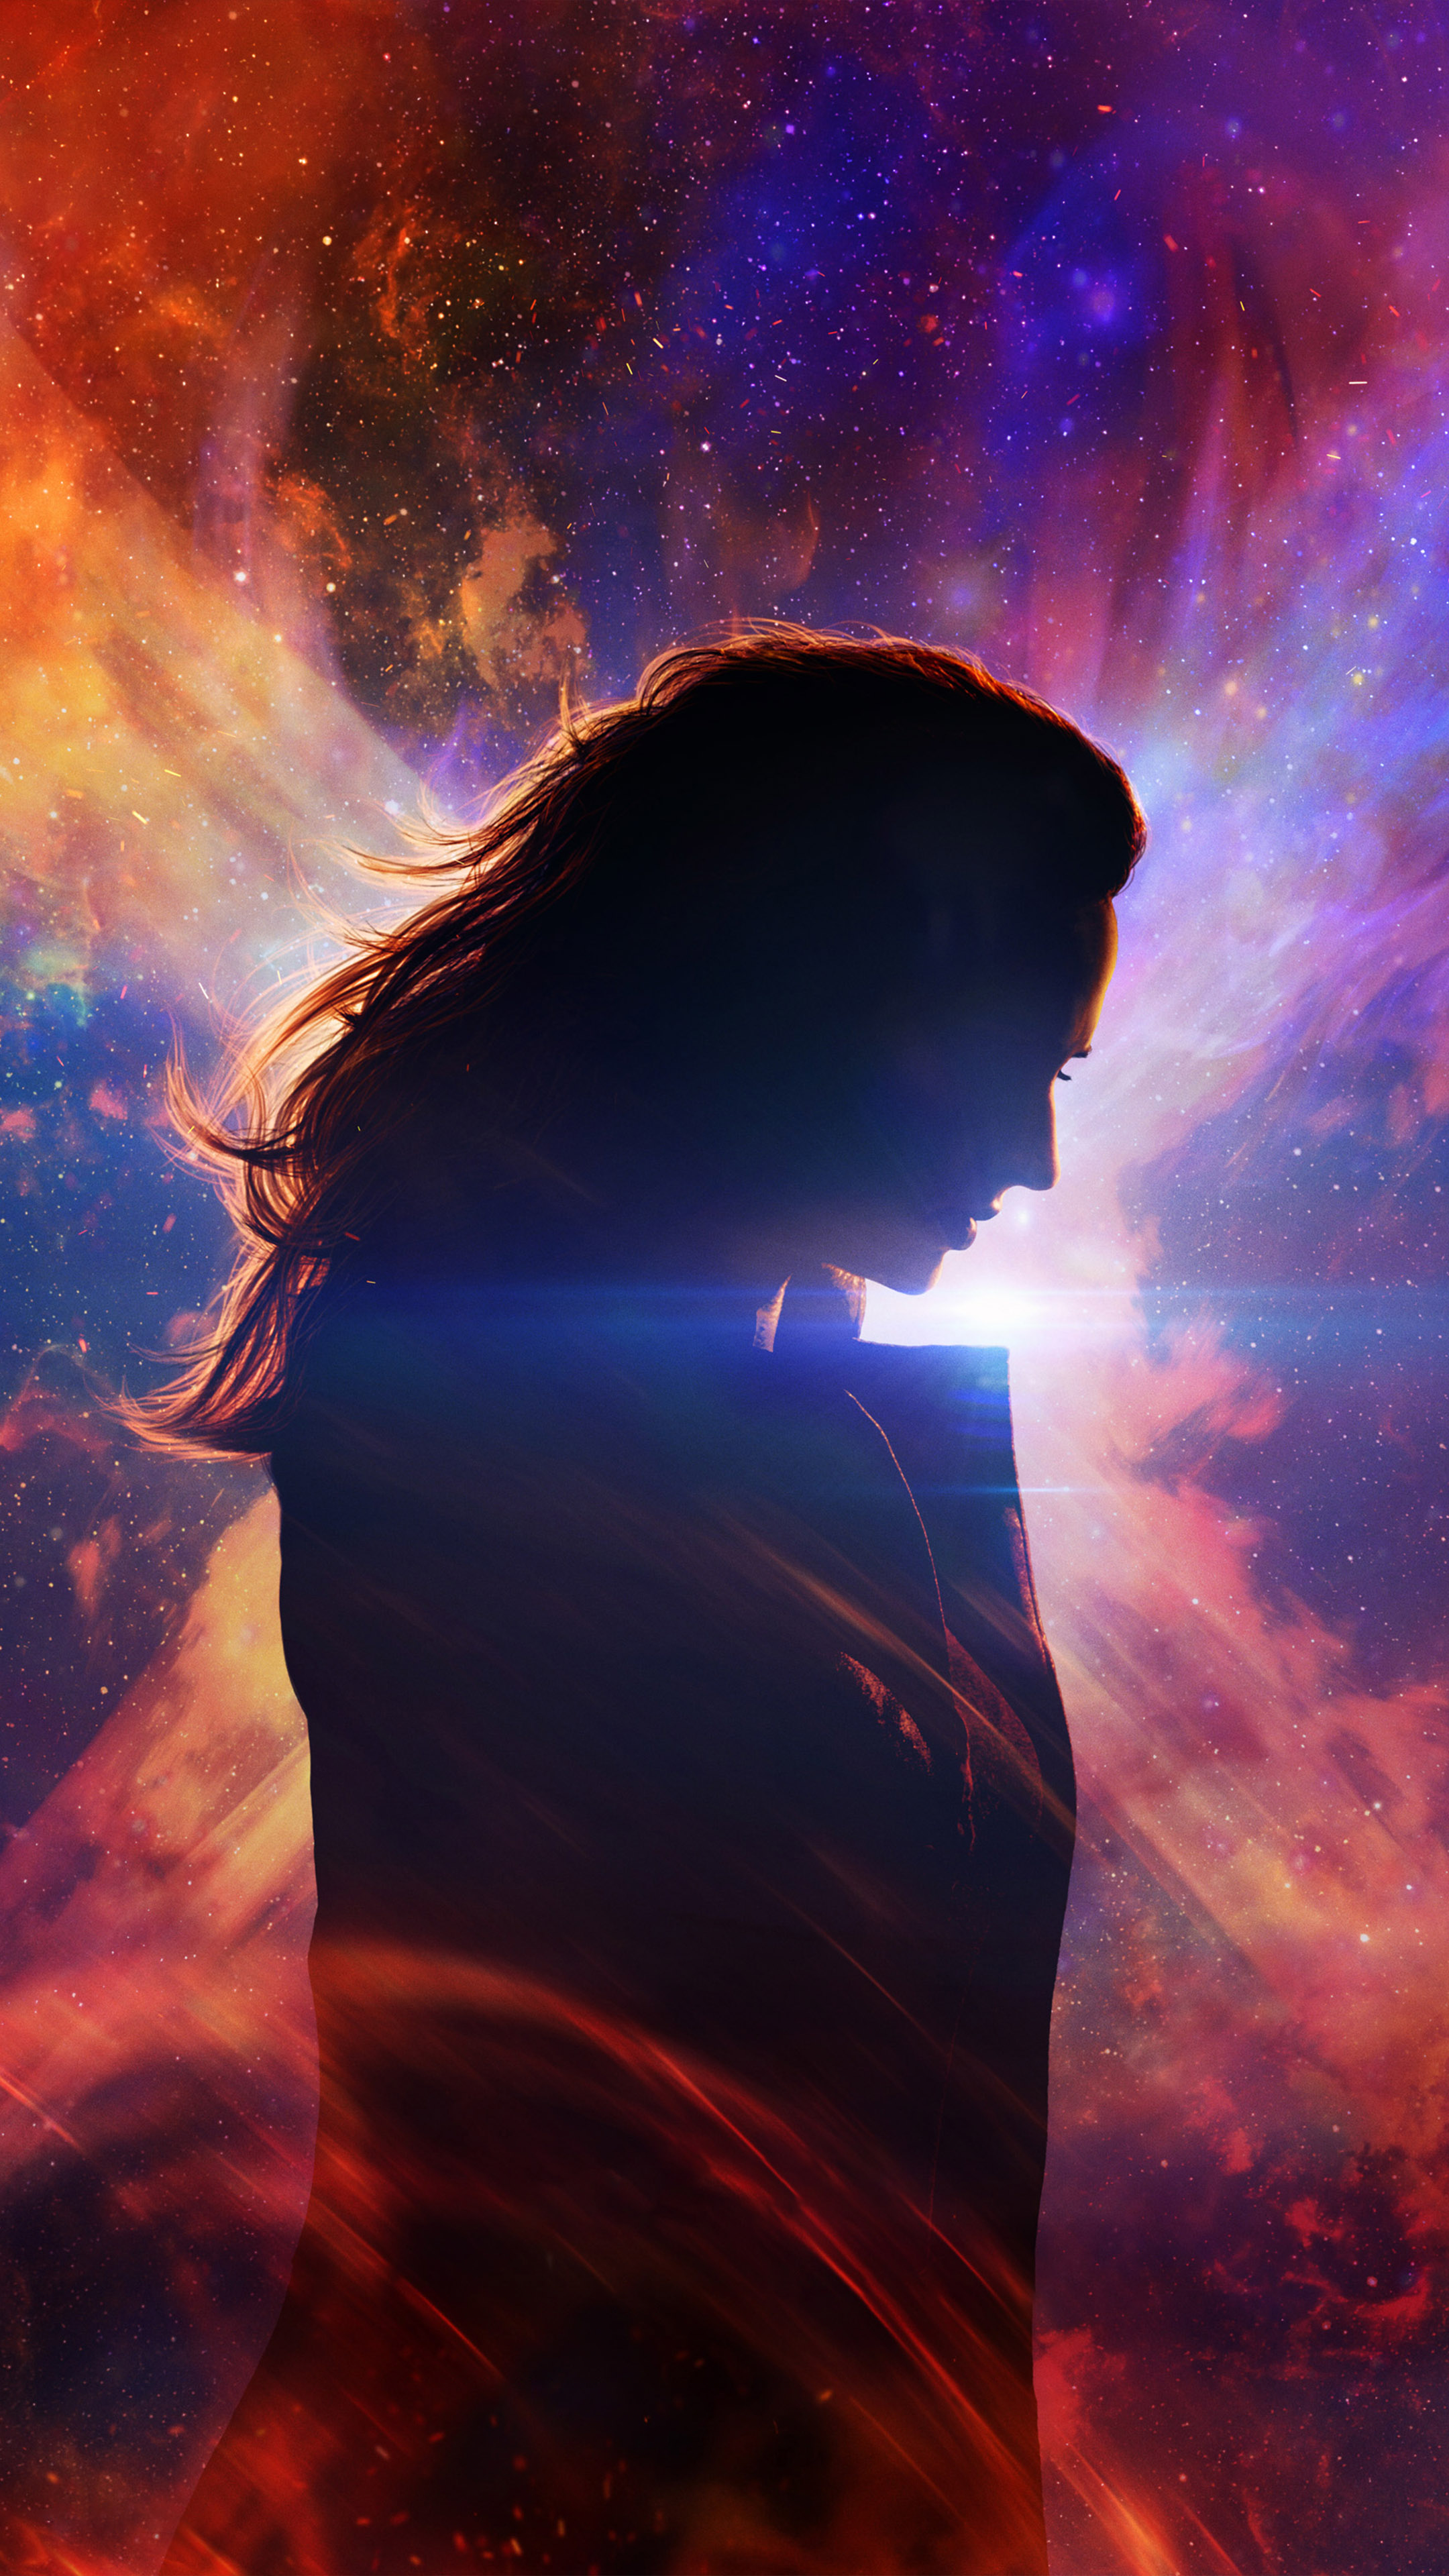 X Men Dark Phoenix 2019 4k Ultra Hd Mobile Wallpaper